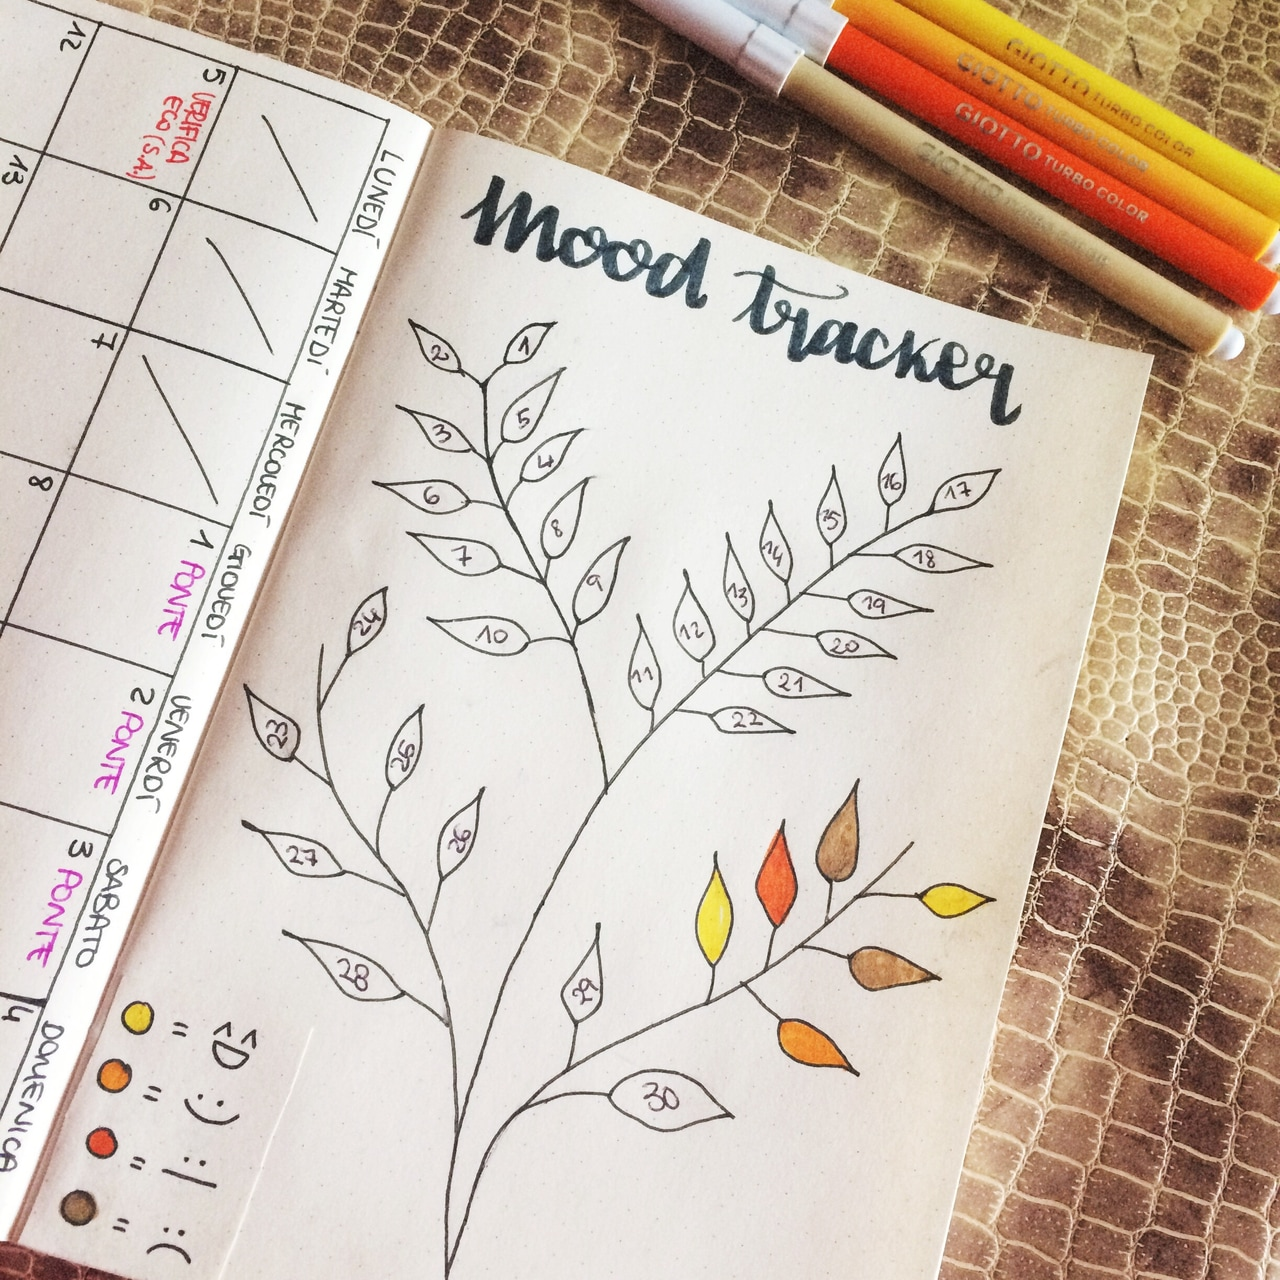 study, scuola, university and month planner